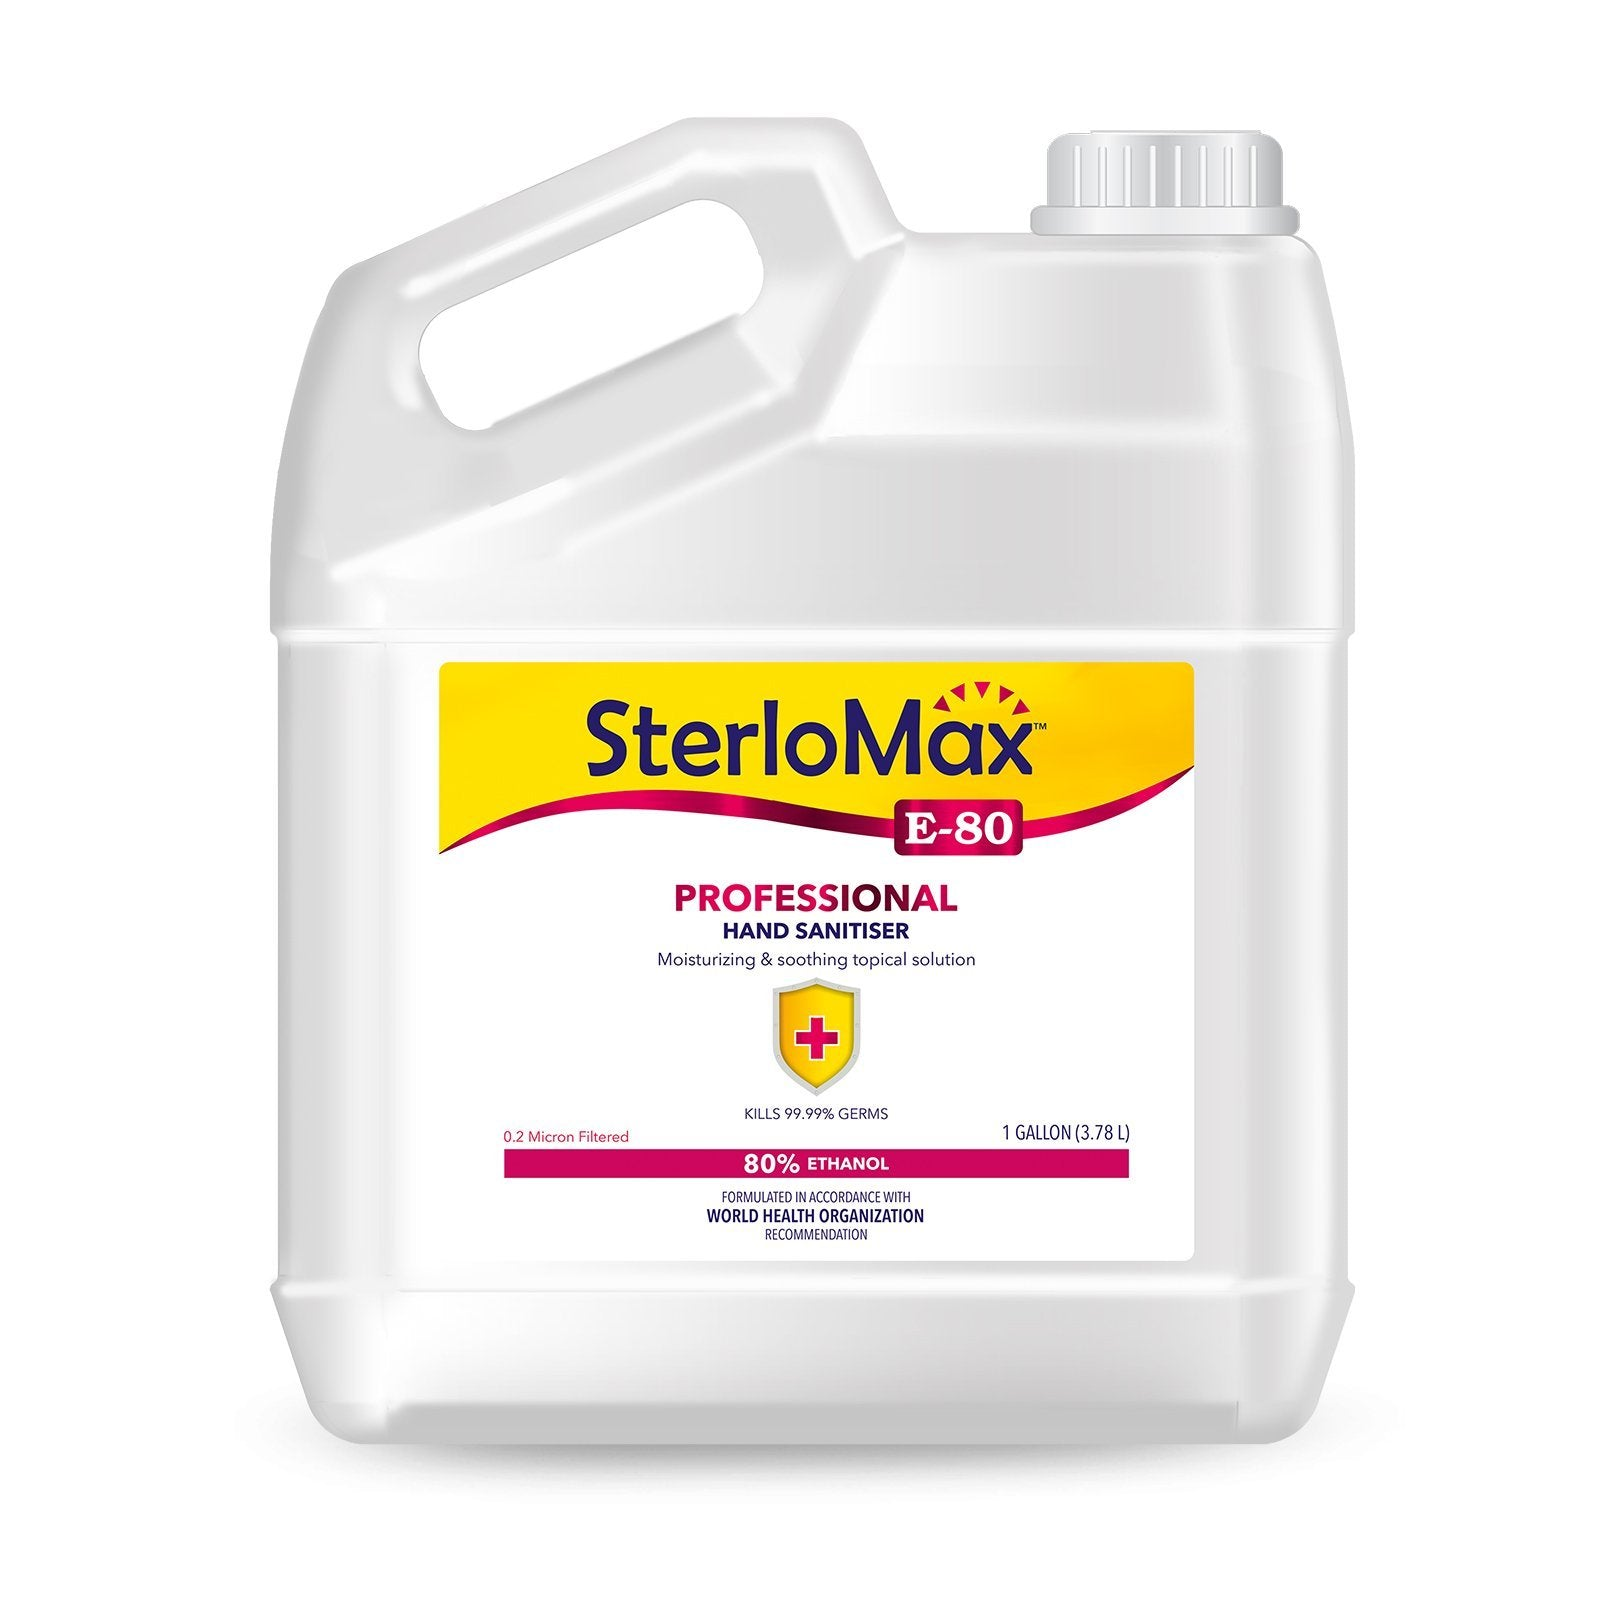 SterloMax E-80 Professional - 80% Ethanol-based Hand Rub Sanitizer and Disinfectant. 1 Gallon (128 Fl Oz)